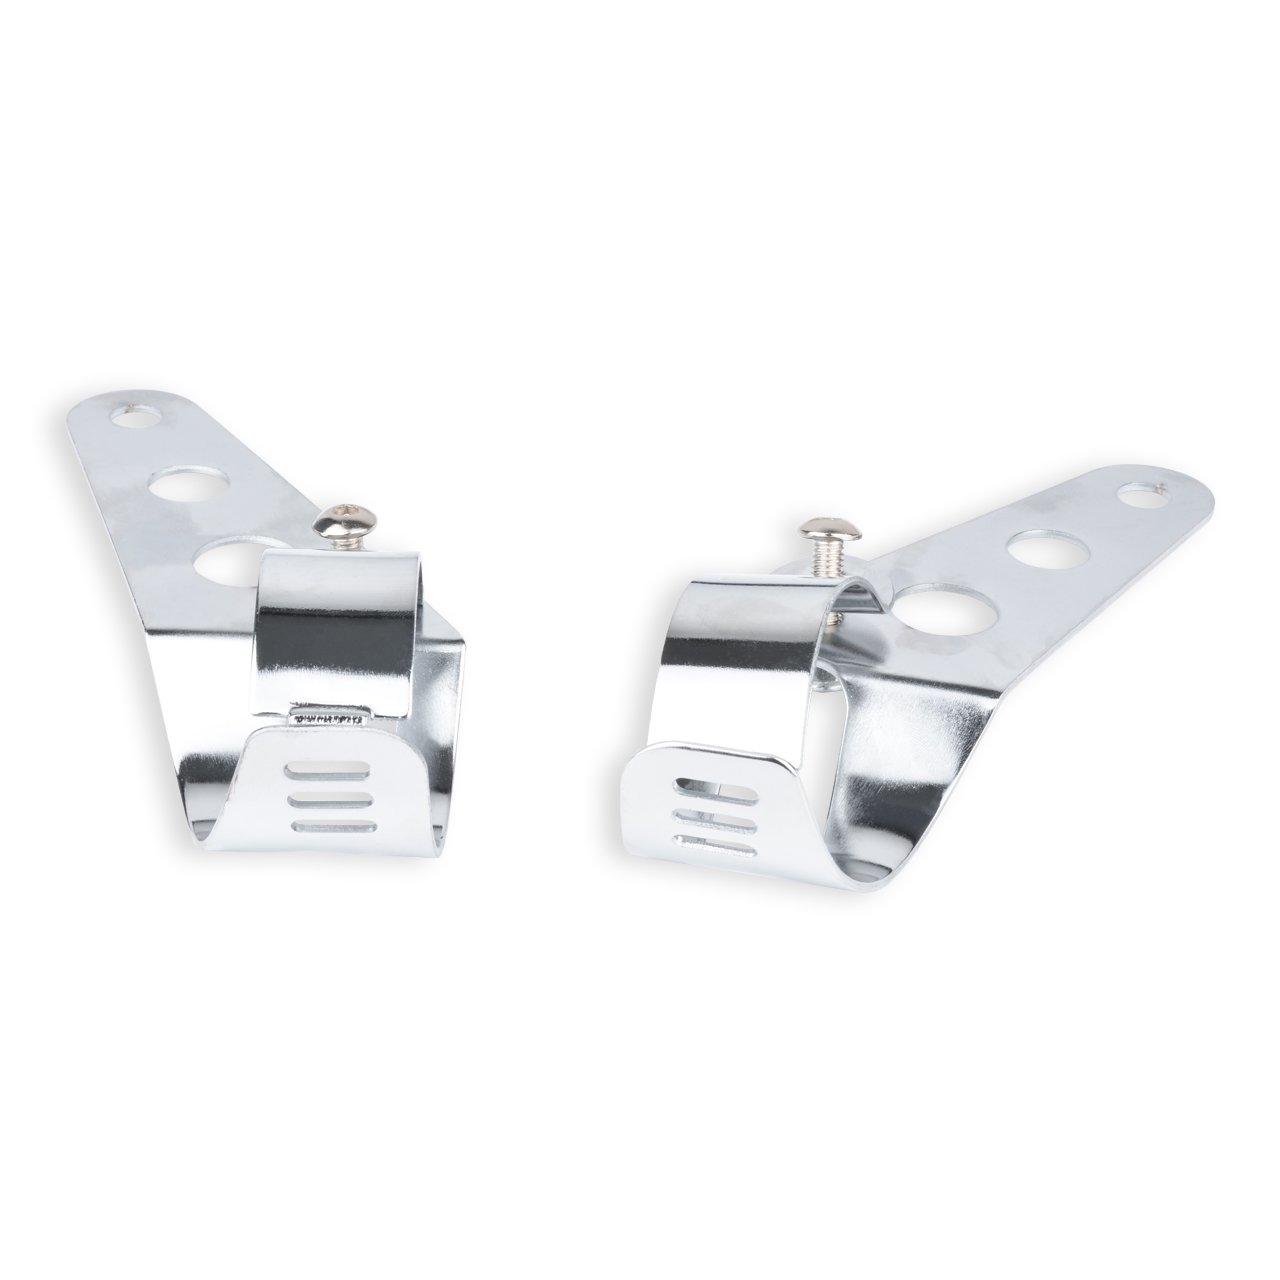 51/ mm pour Moto Street Bike Cafe Racer Harley Davidson TUINCYN Moto Universel Phare Montage Fourche Clamp Bracket Chrome Argent Tubes de Fourche 38